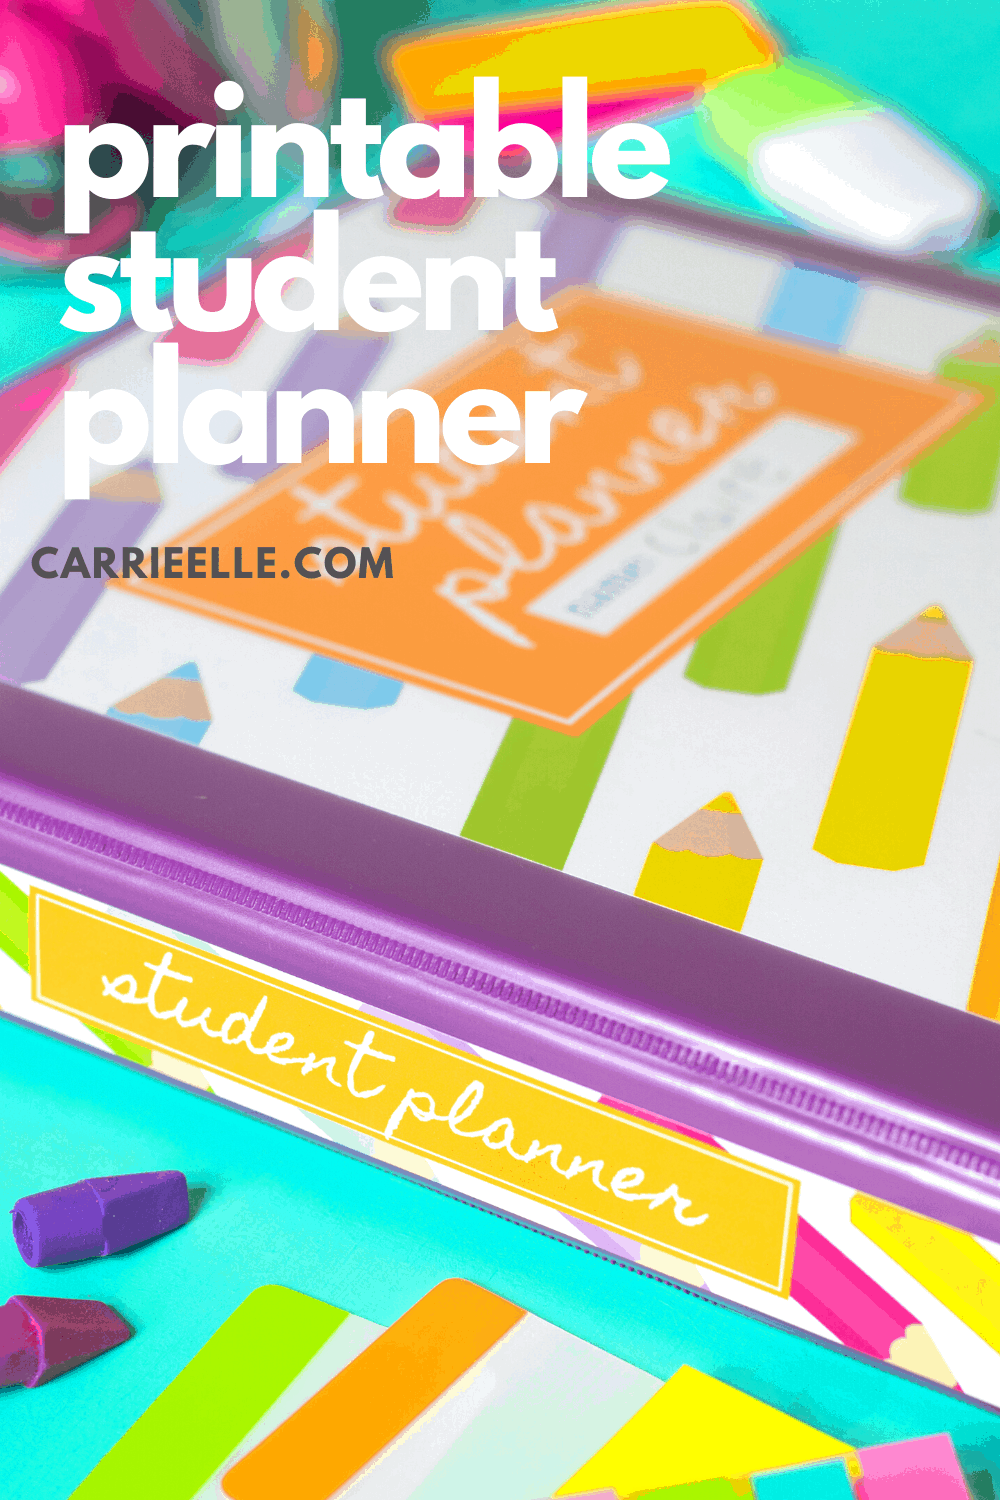 Printable Student Planner CarrieElle.com